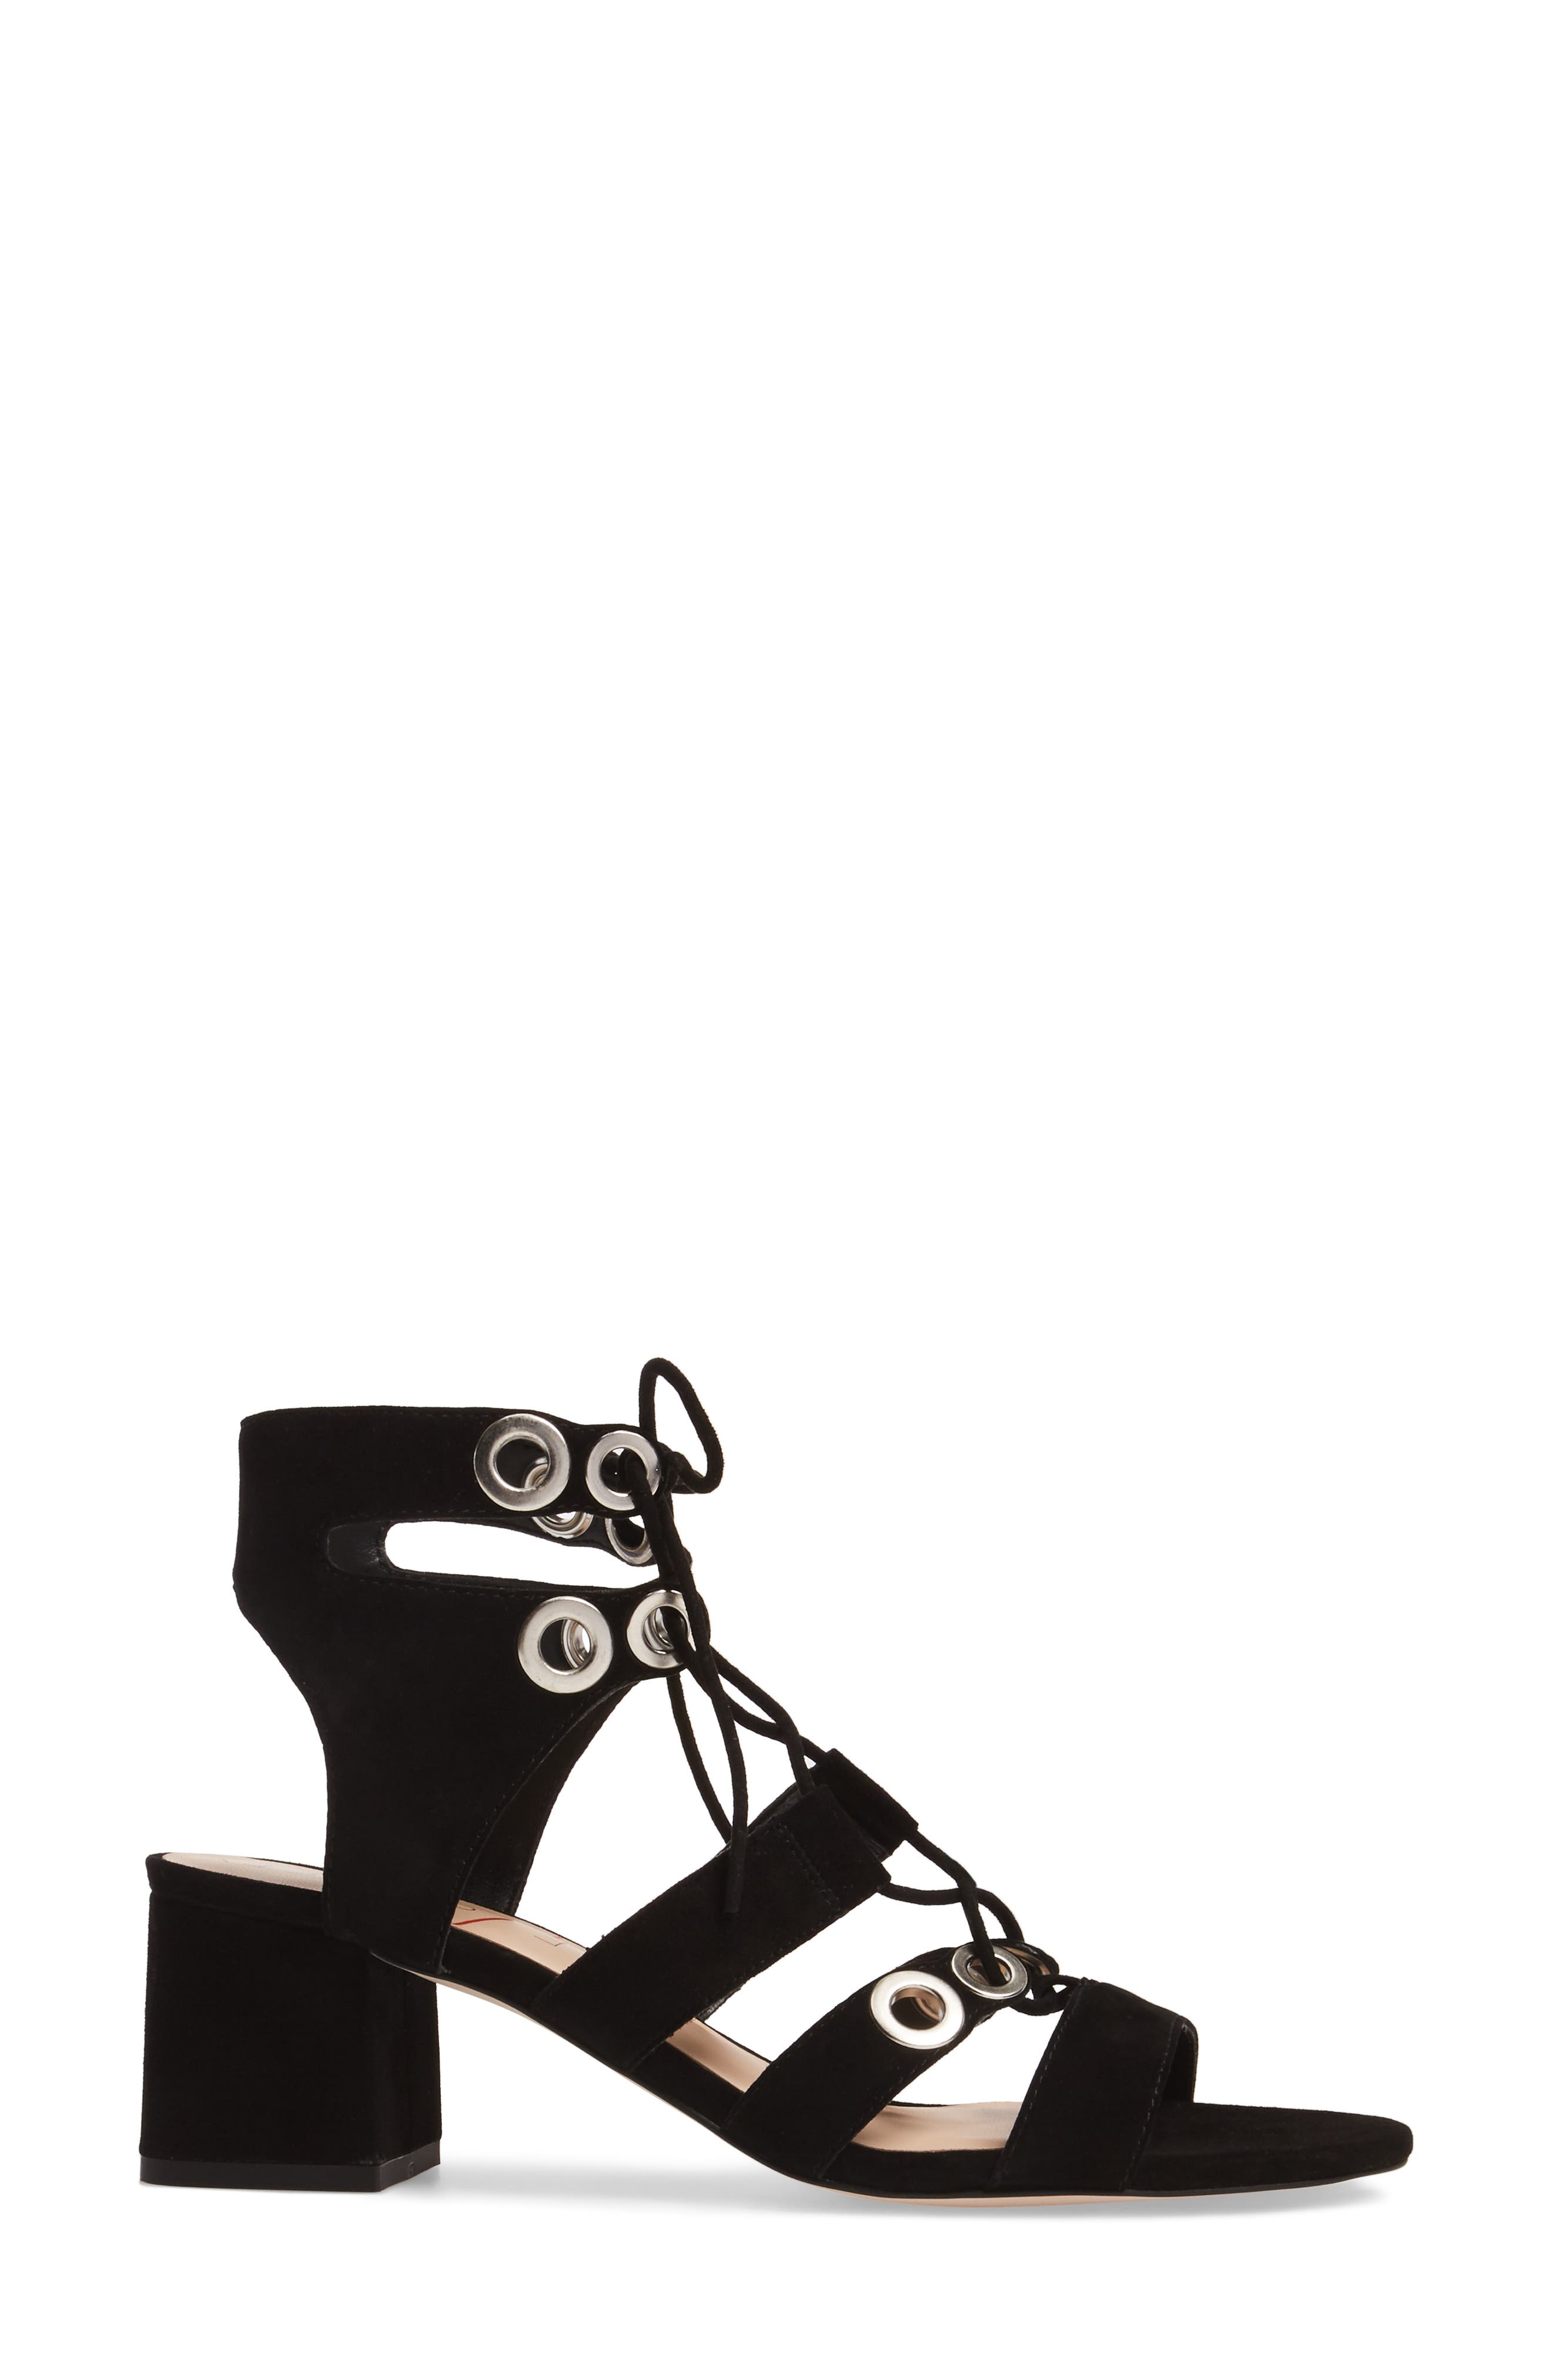 Rosemary Lace-Up Sandal,                             Alternate thumbnail 3, color,                             003